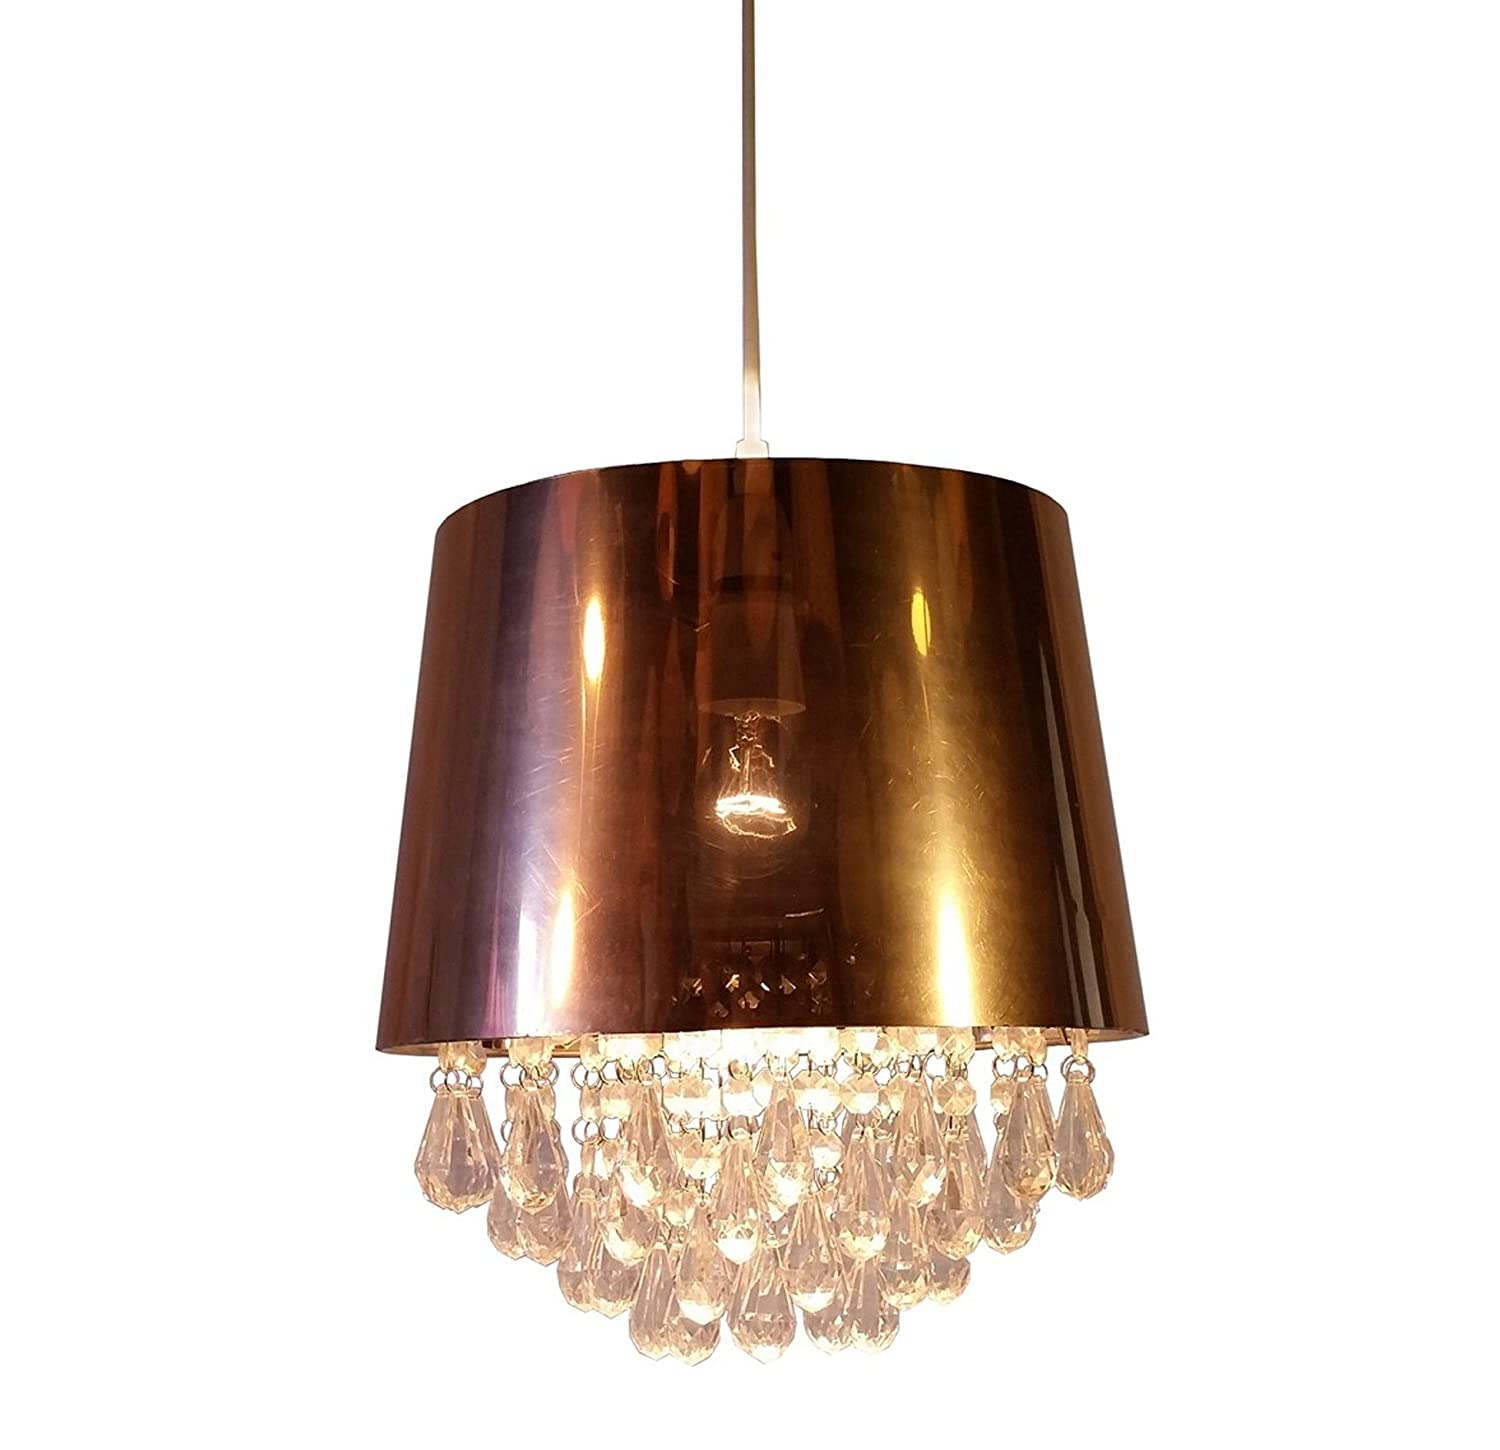 Kliving Dumfries Copper Drum and Clear Droplets Non Electric Pendant Ceiling Light Shade Amazon.co.uk Lighting  sc 1 st  Amazon UK & Kliving Dumfries Copper Drum and Clear Droplets Non Electric ... azcodes.com